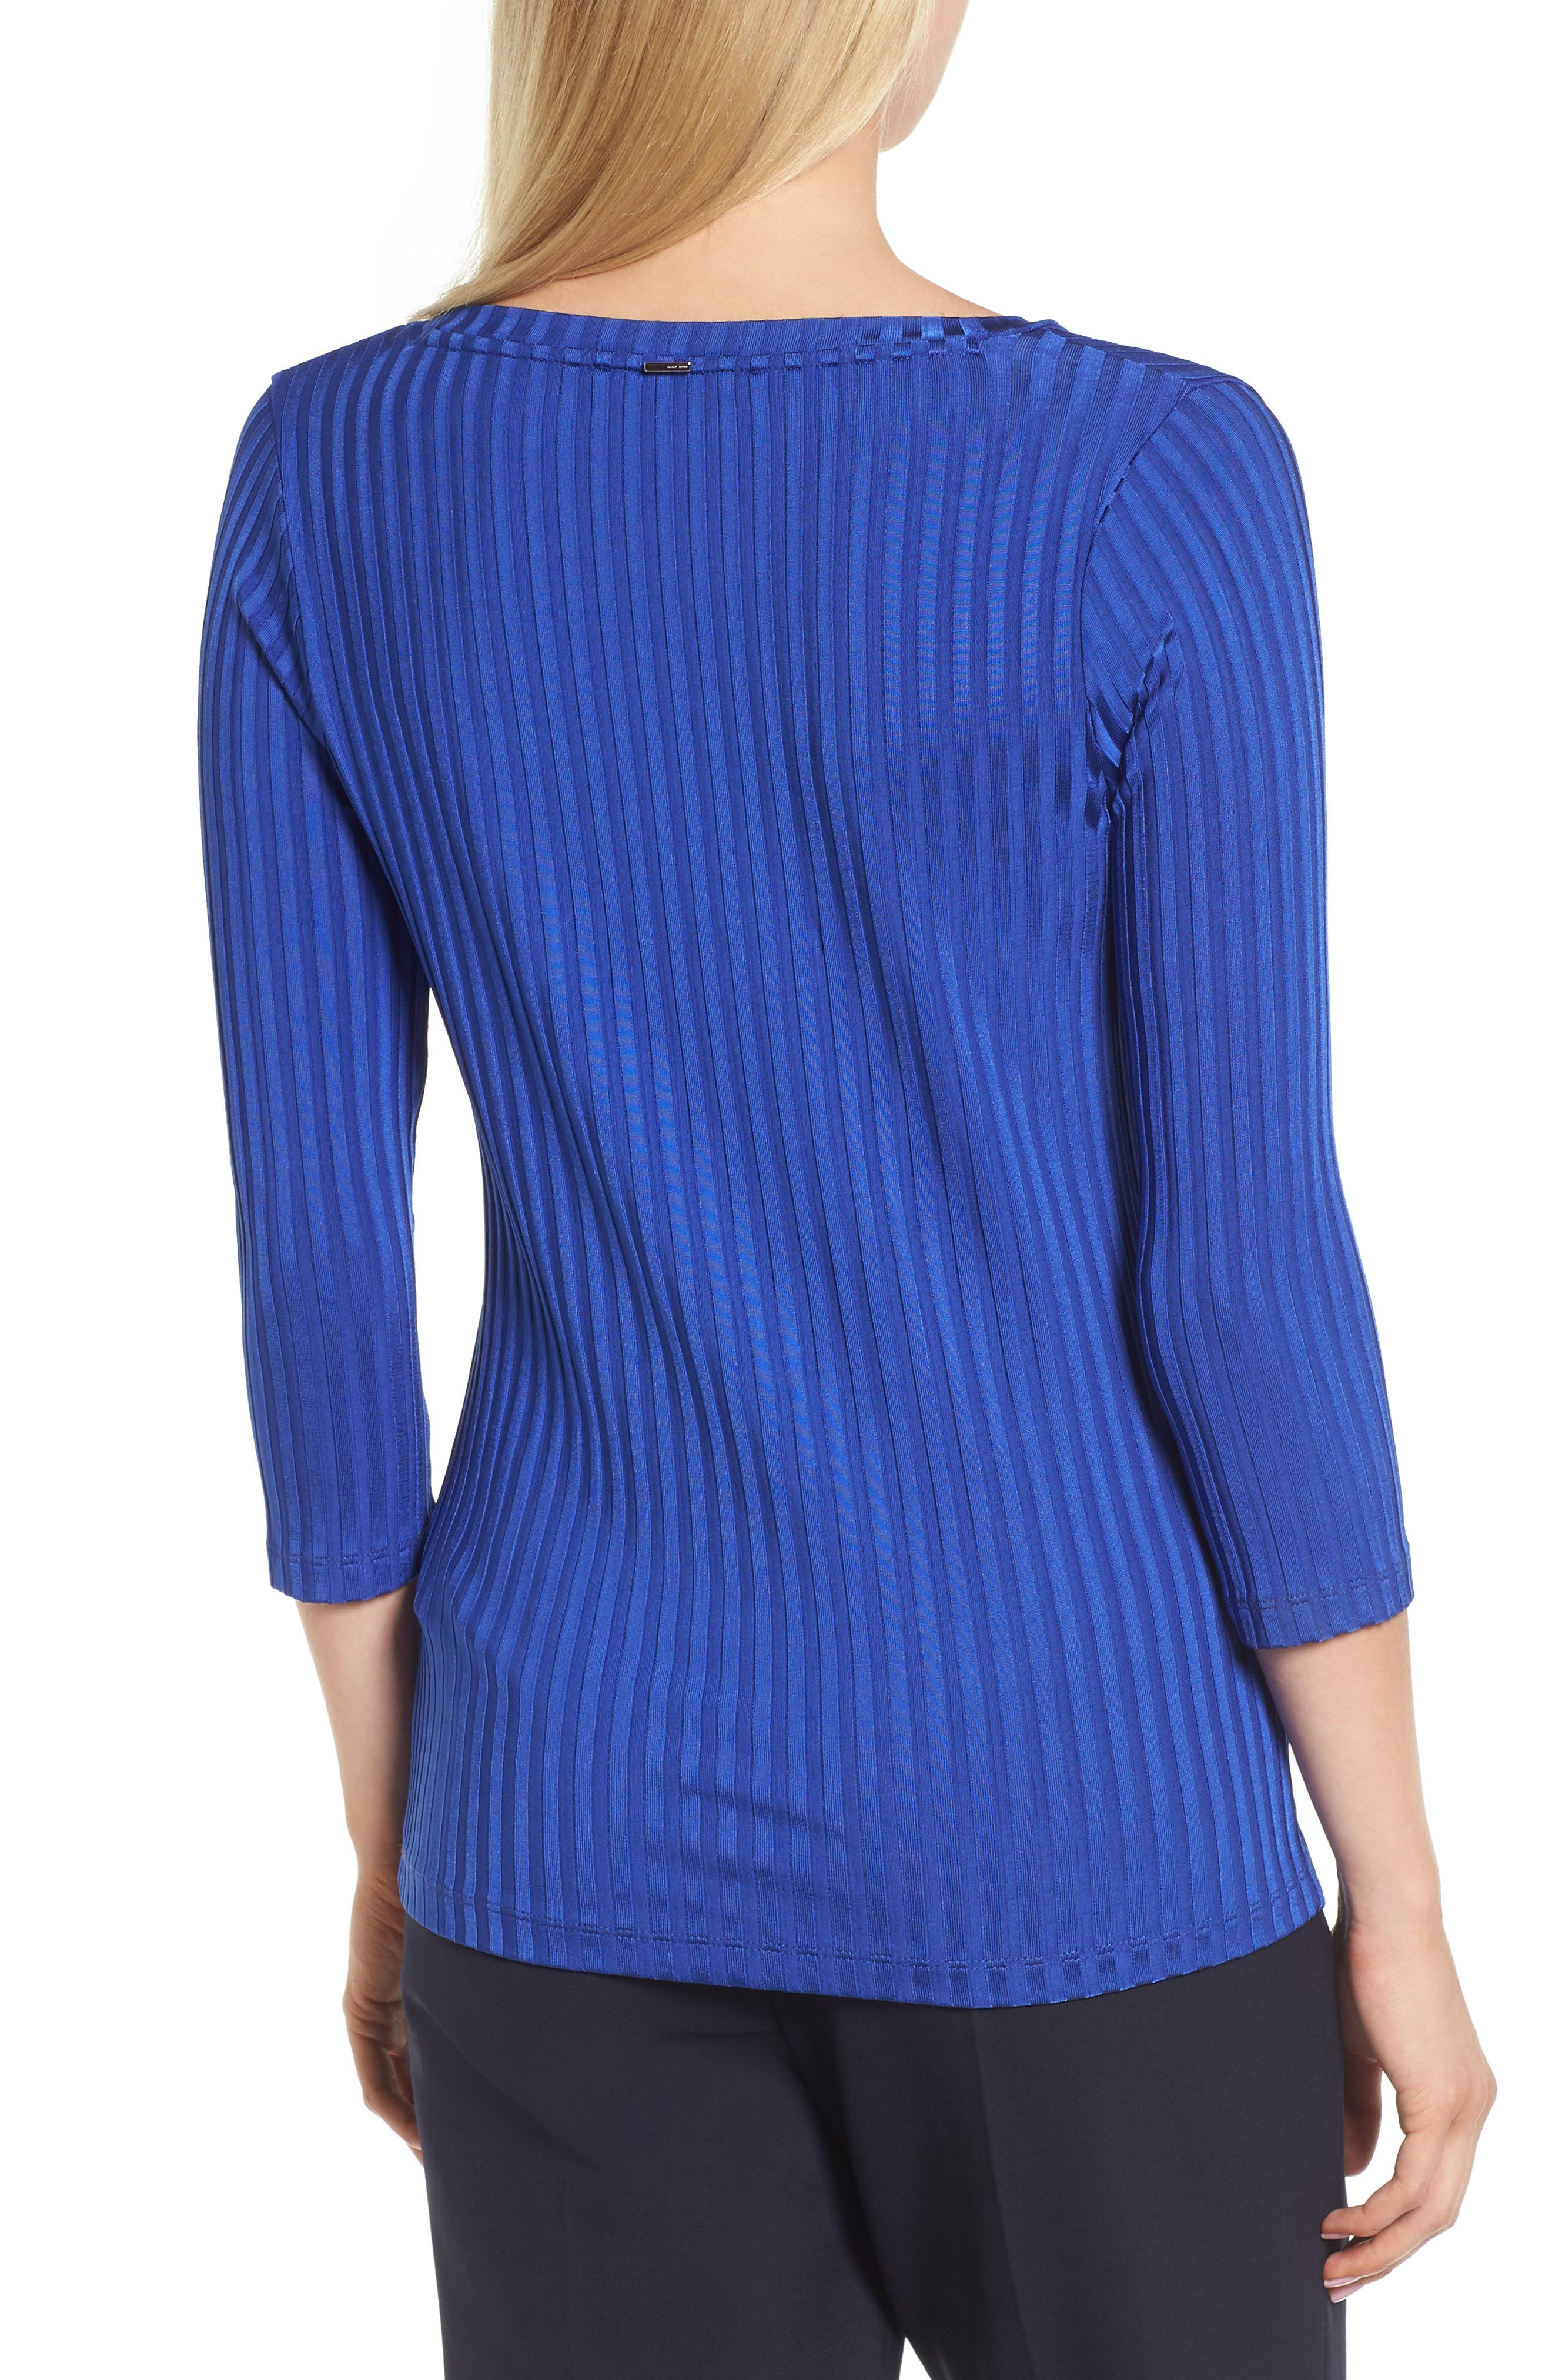 Etrica V-Neck Ribbed Top,                             Alternate thumbnail 2, color,                             Sailor Blue